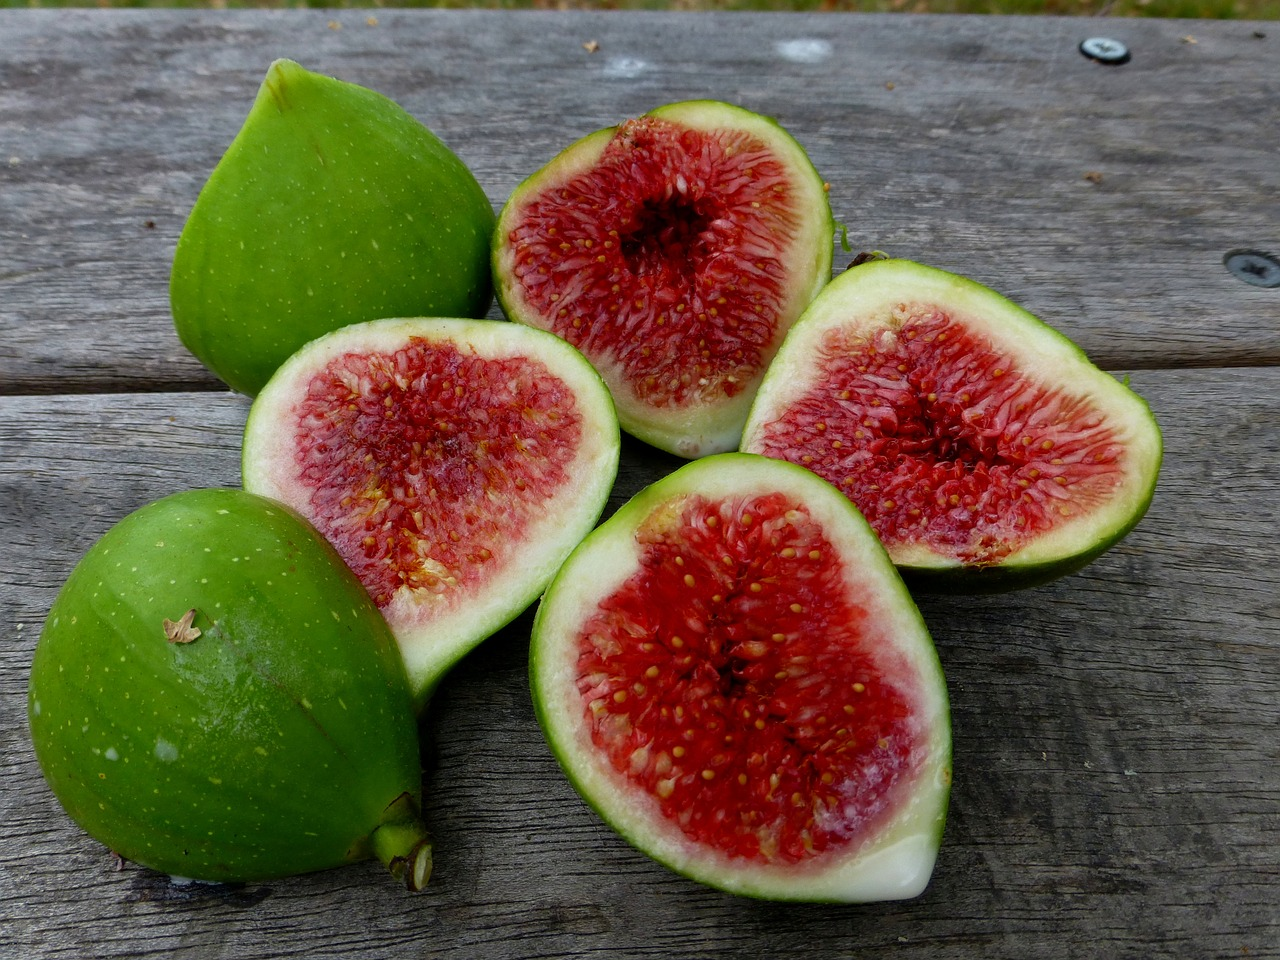 Download free photo of Figs,fruit,ripe,italy,free pictures - from  needpix.com